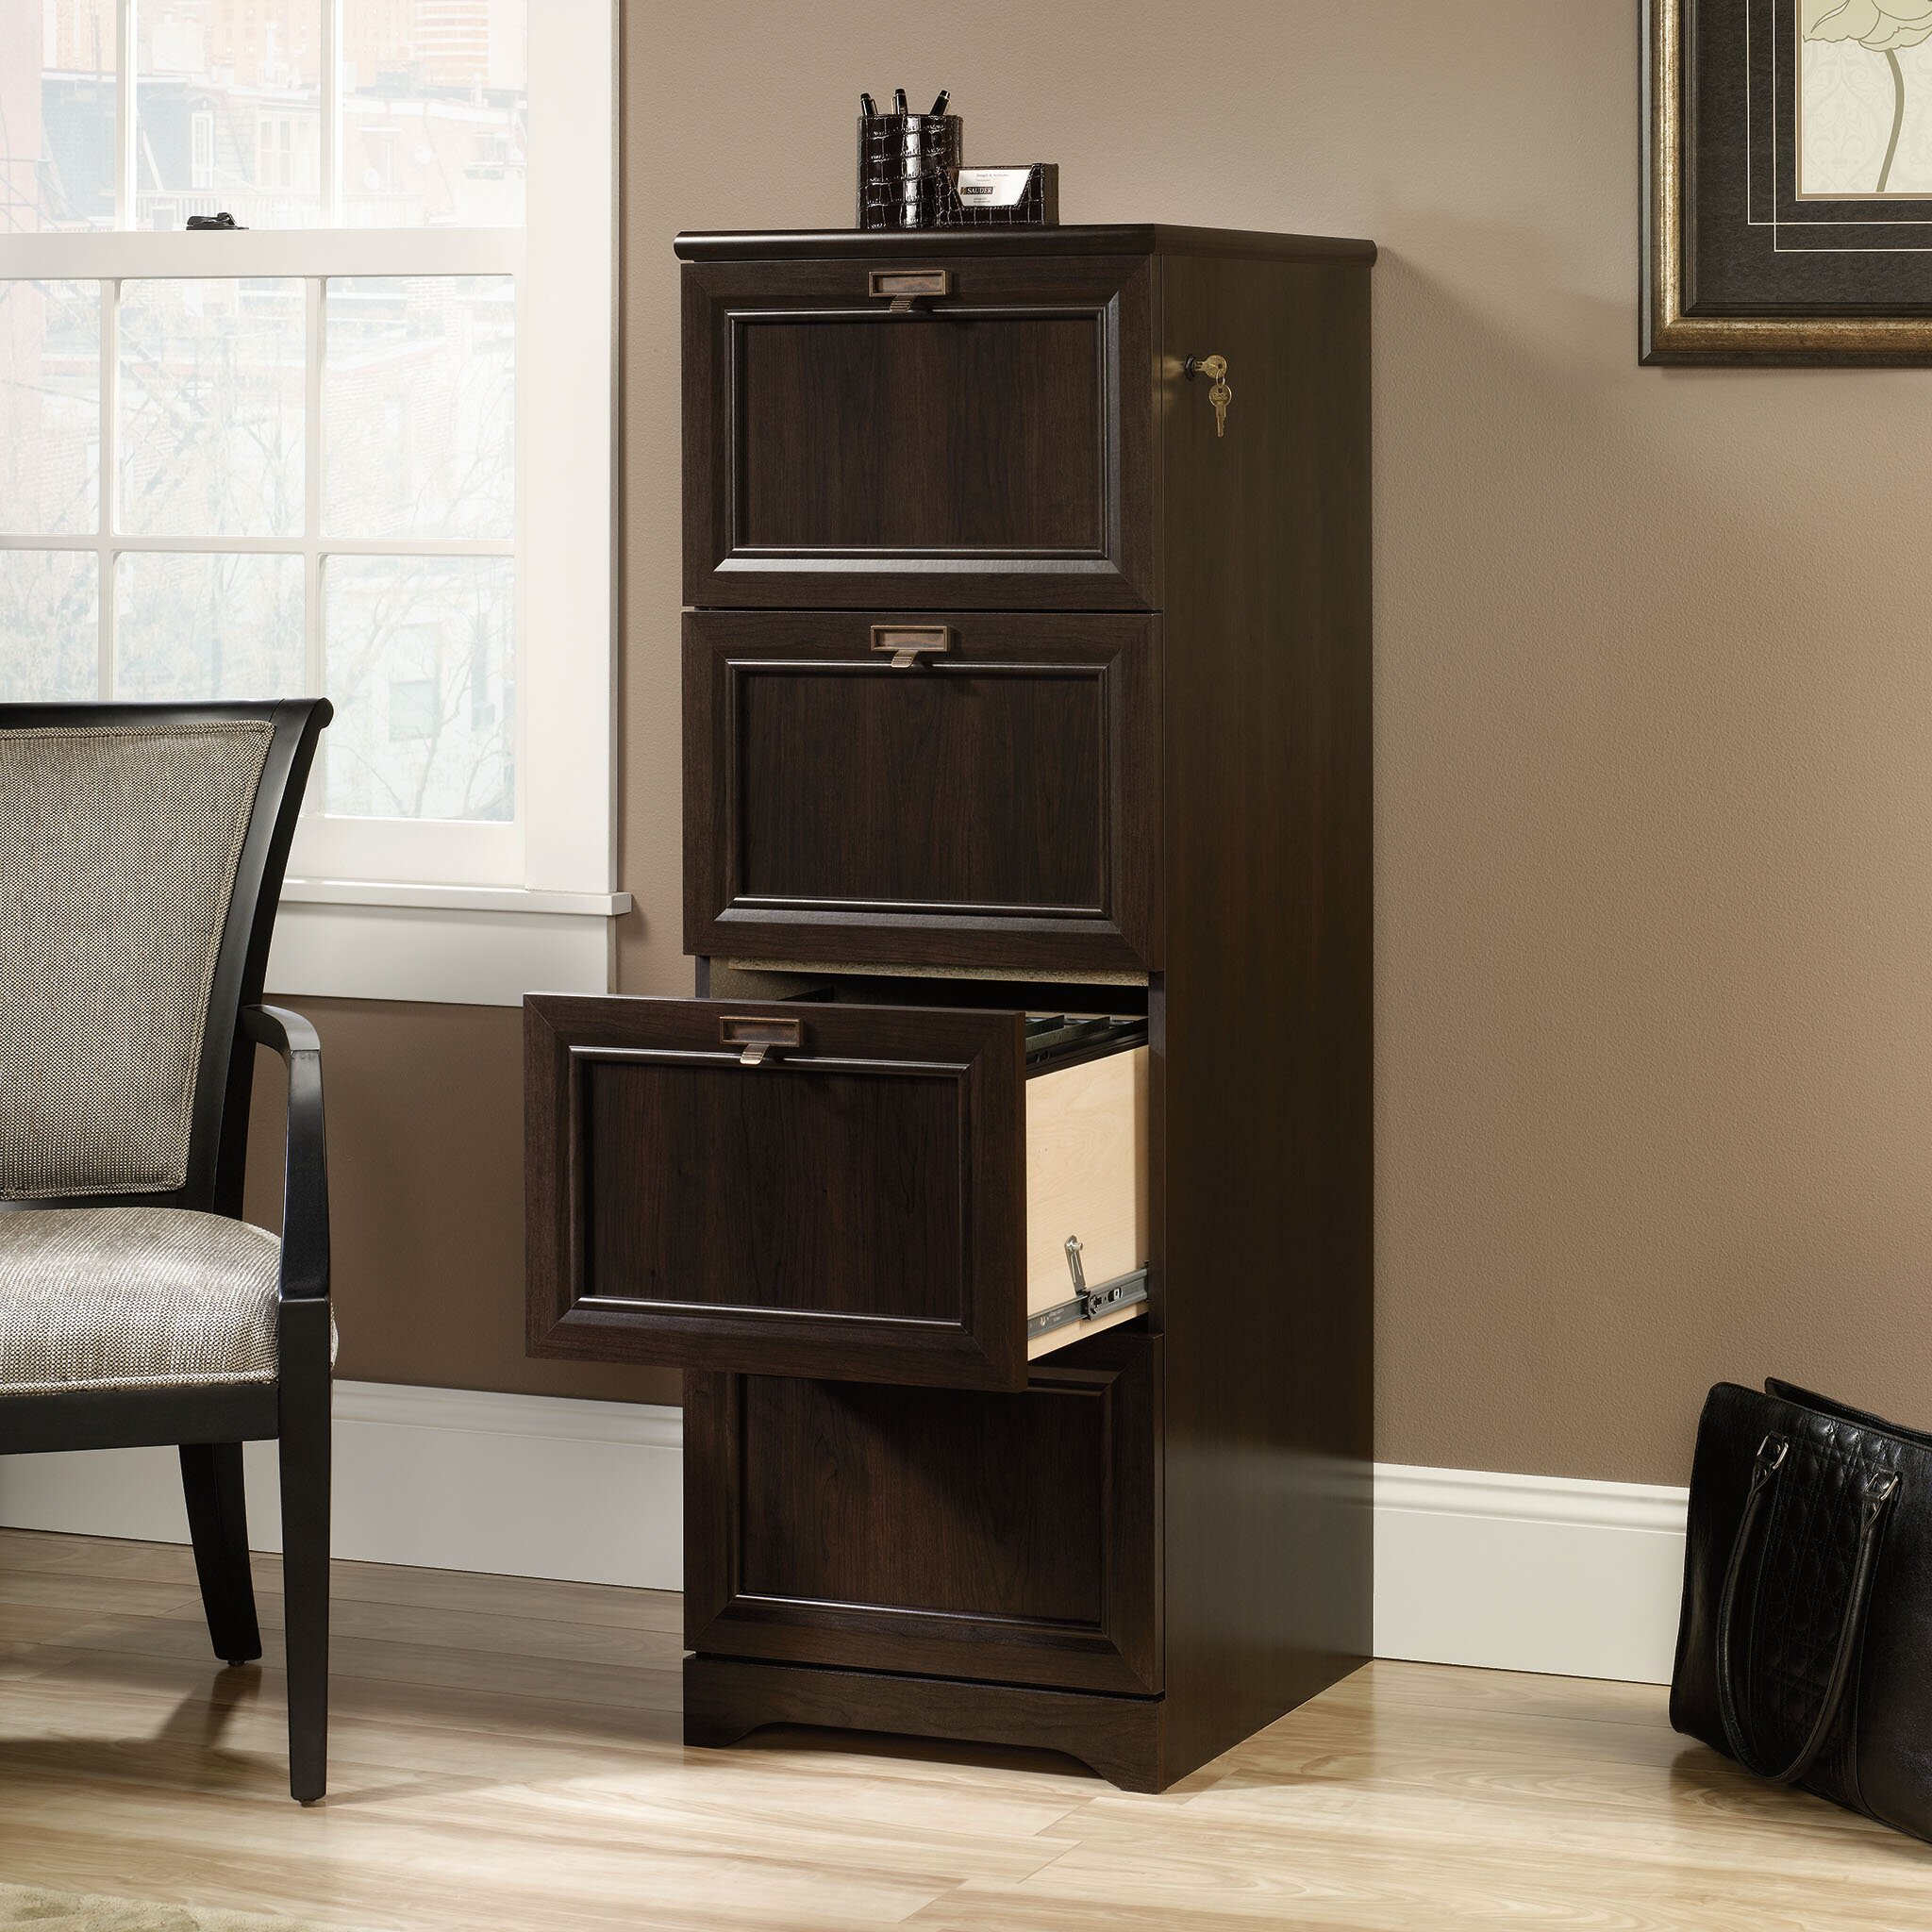 Fire Proof Filing Cabinets Darby Home Co Steadham 4 Drawer File Reviews Wayfair